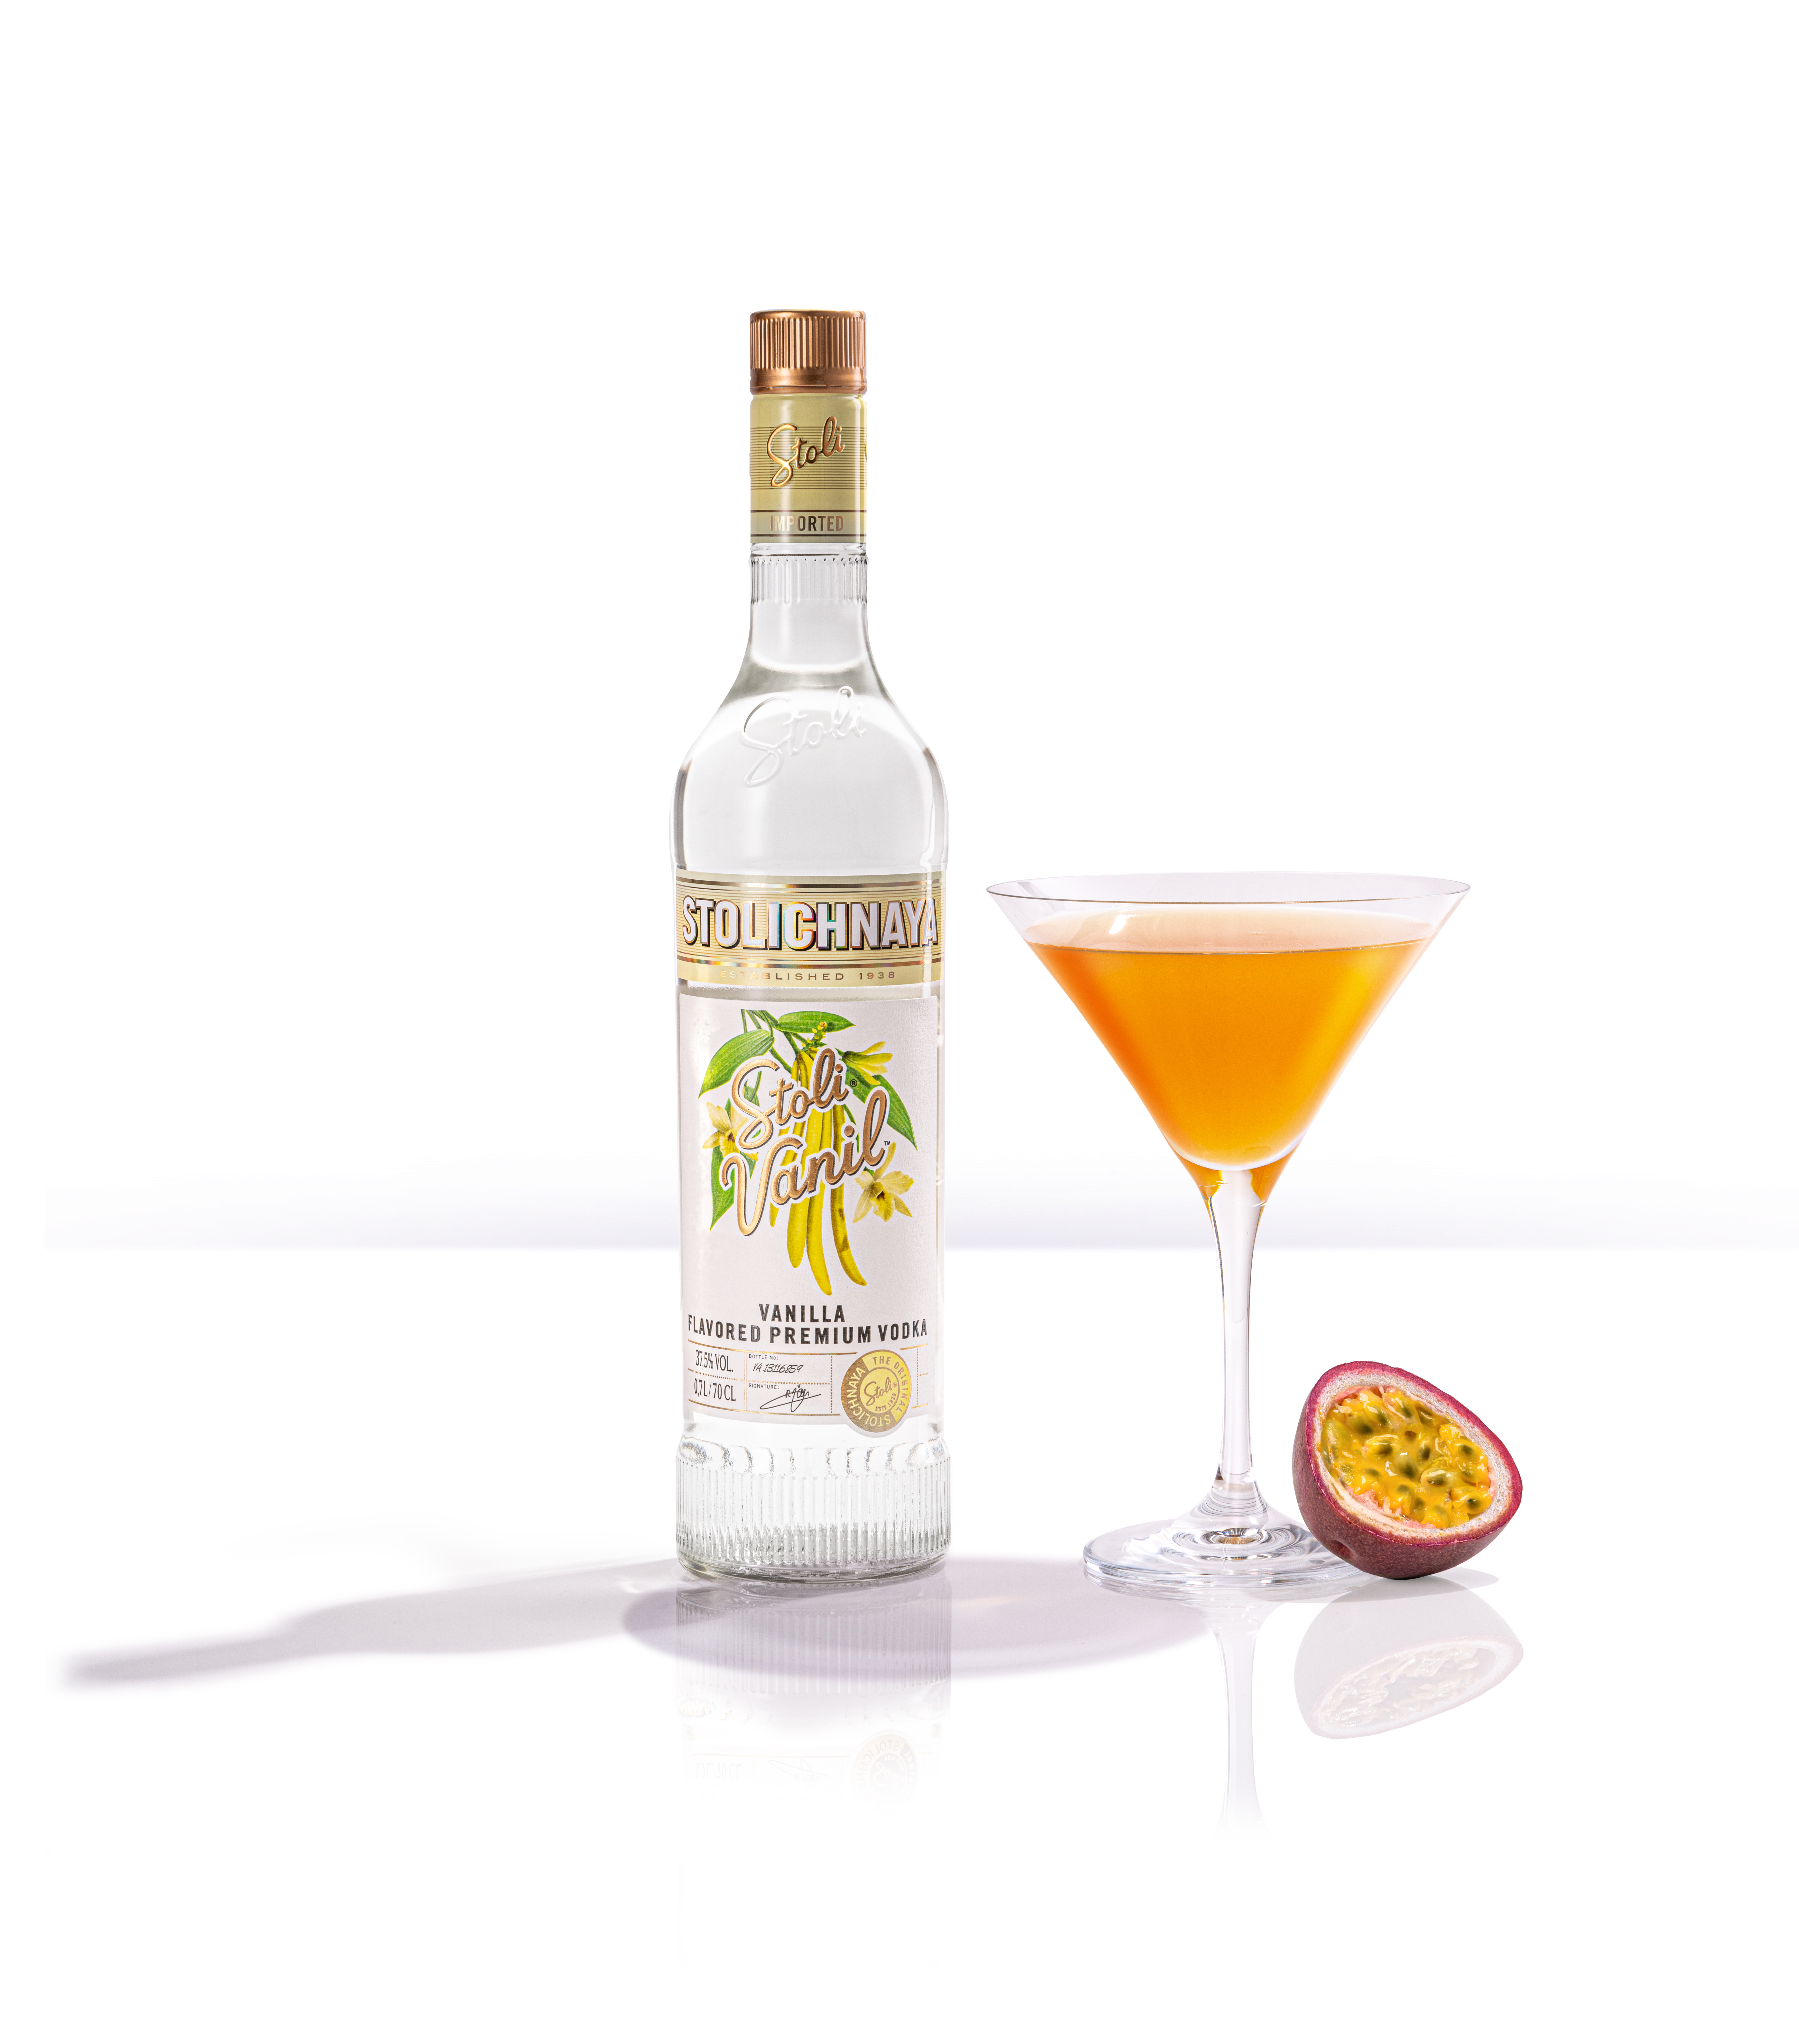 Vanilla Pornstar cocktail devised by The Cocktail Service for the Stoli Vodka Signature Serves drink brand consultancy project